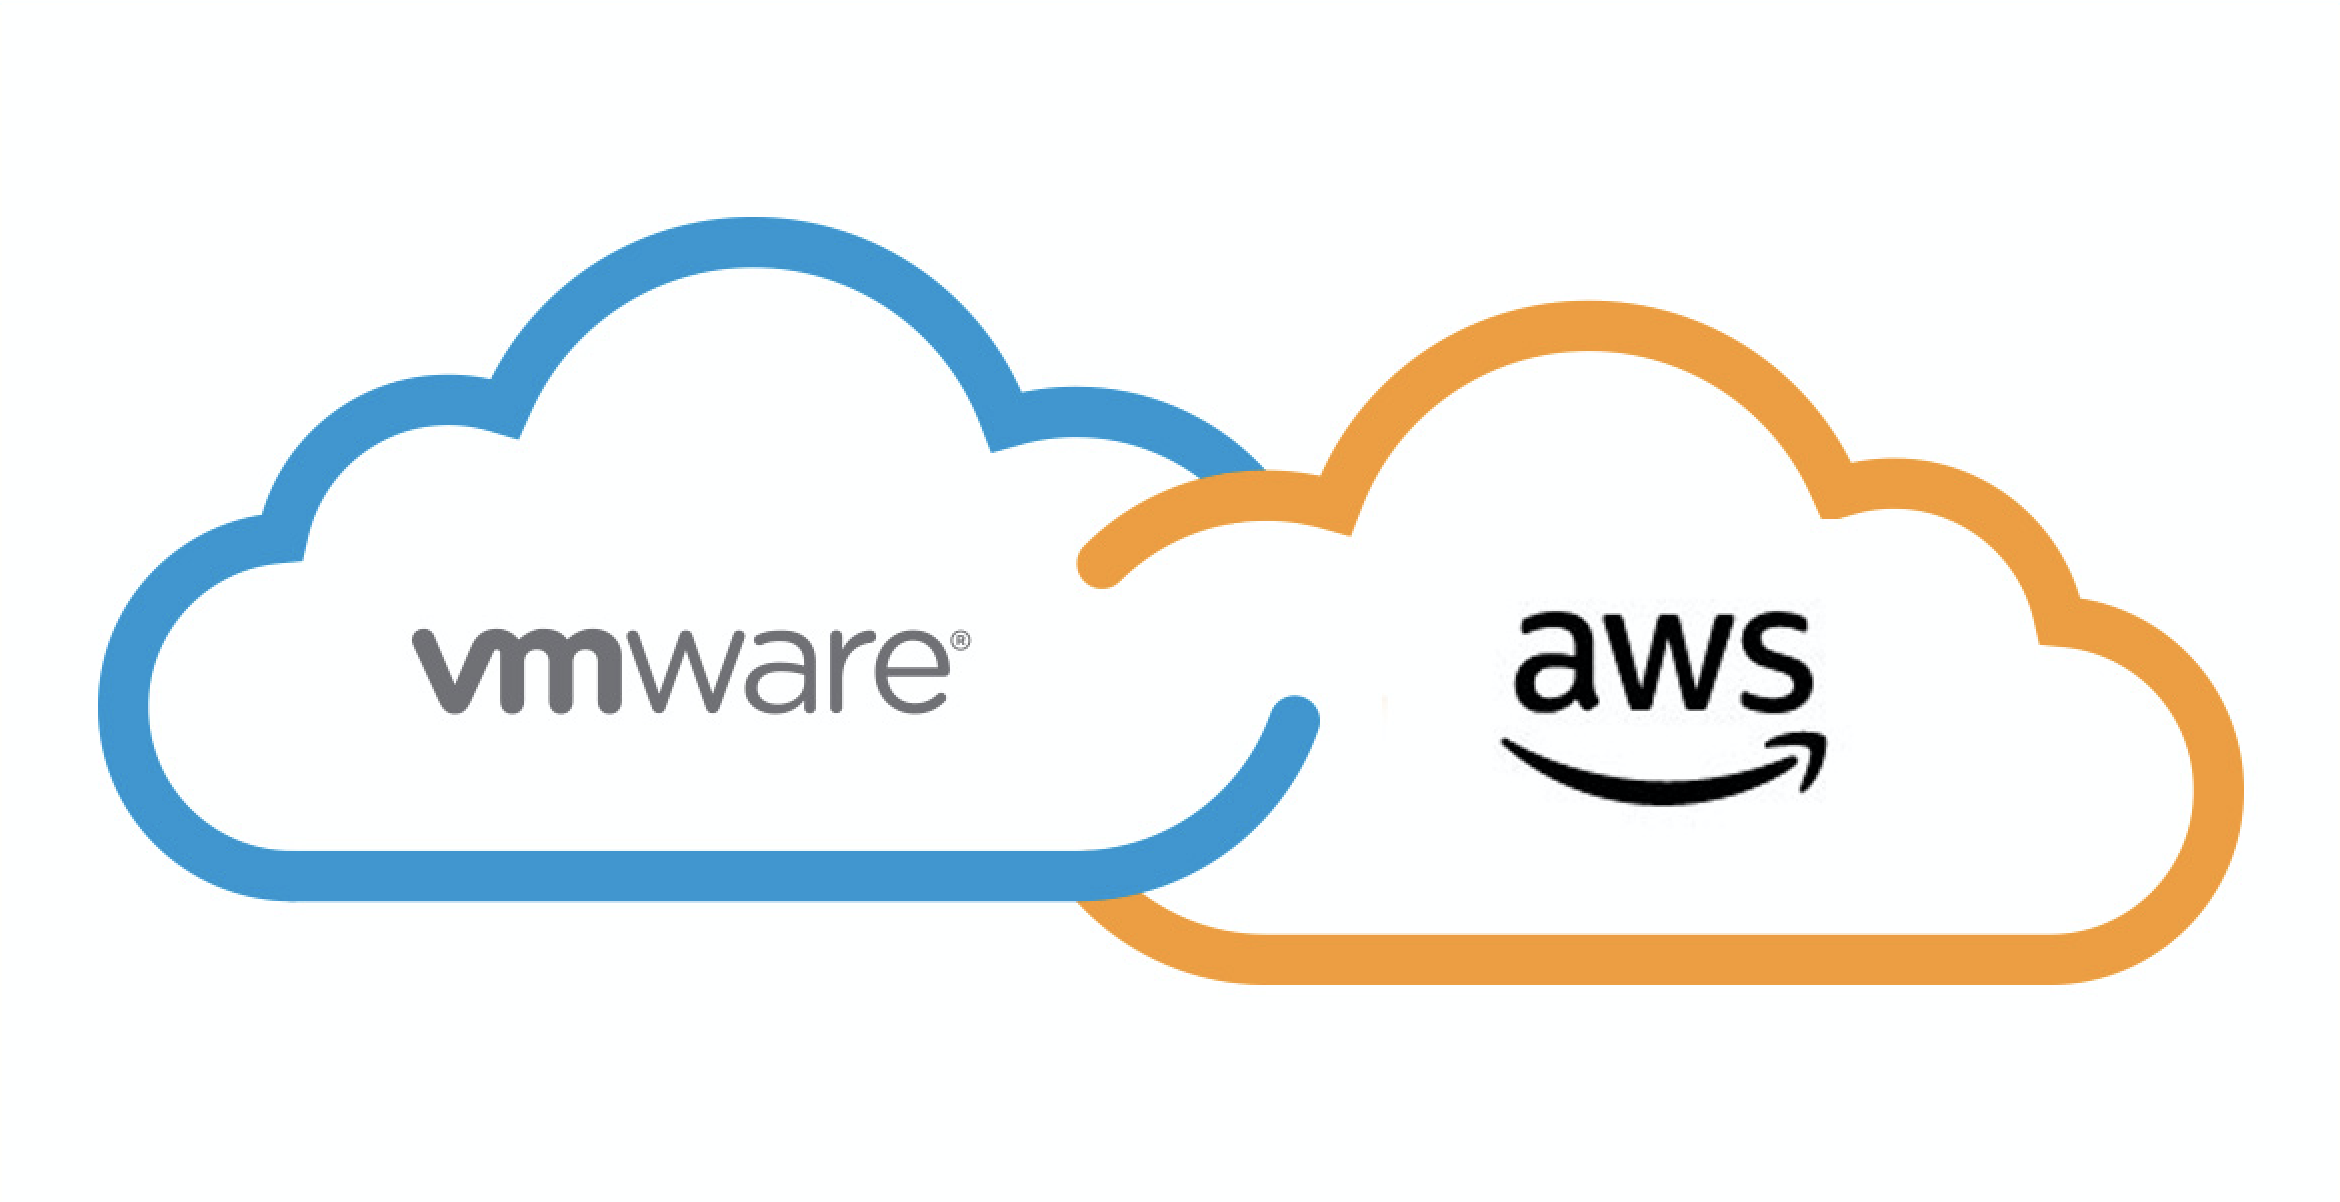 Aws Vmware Hybrid Solutions The Best Of Both Worlds